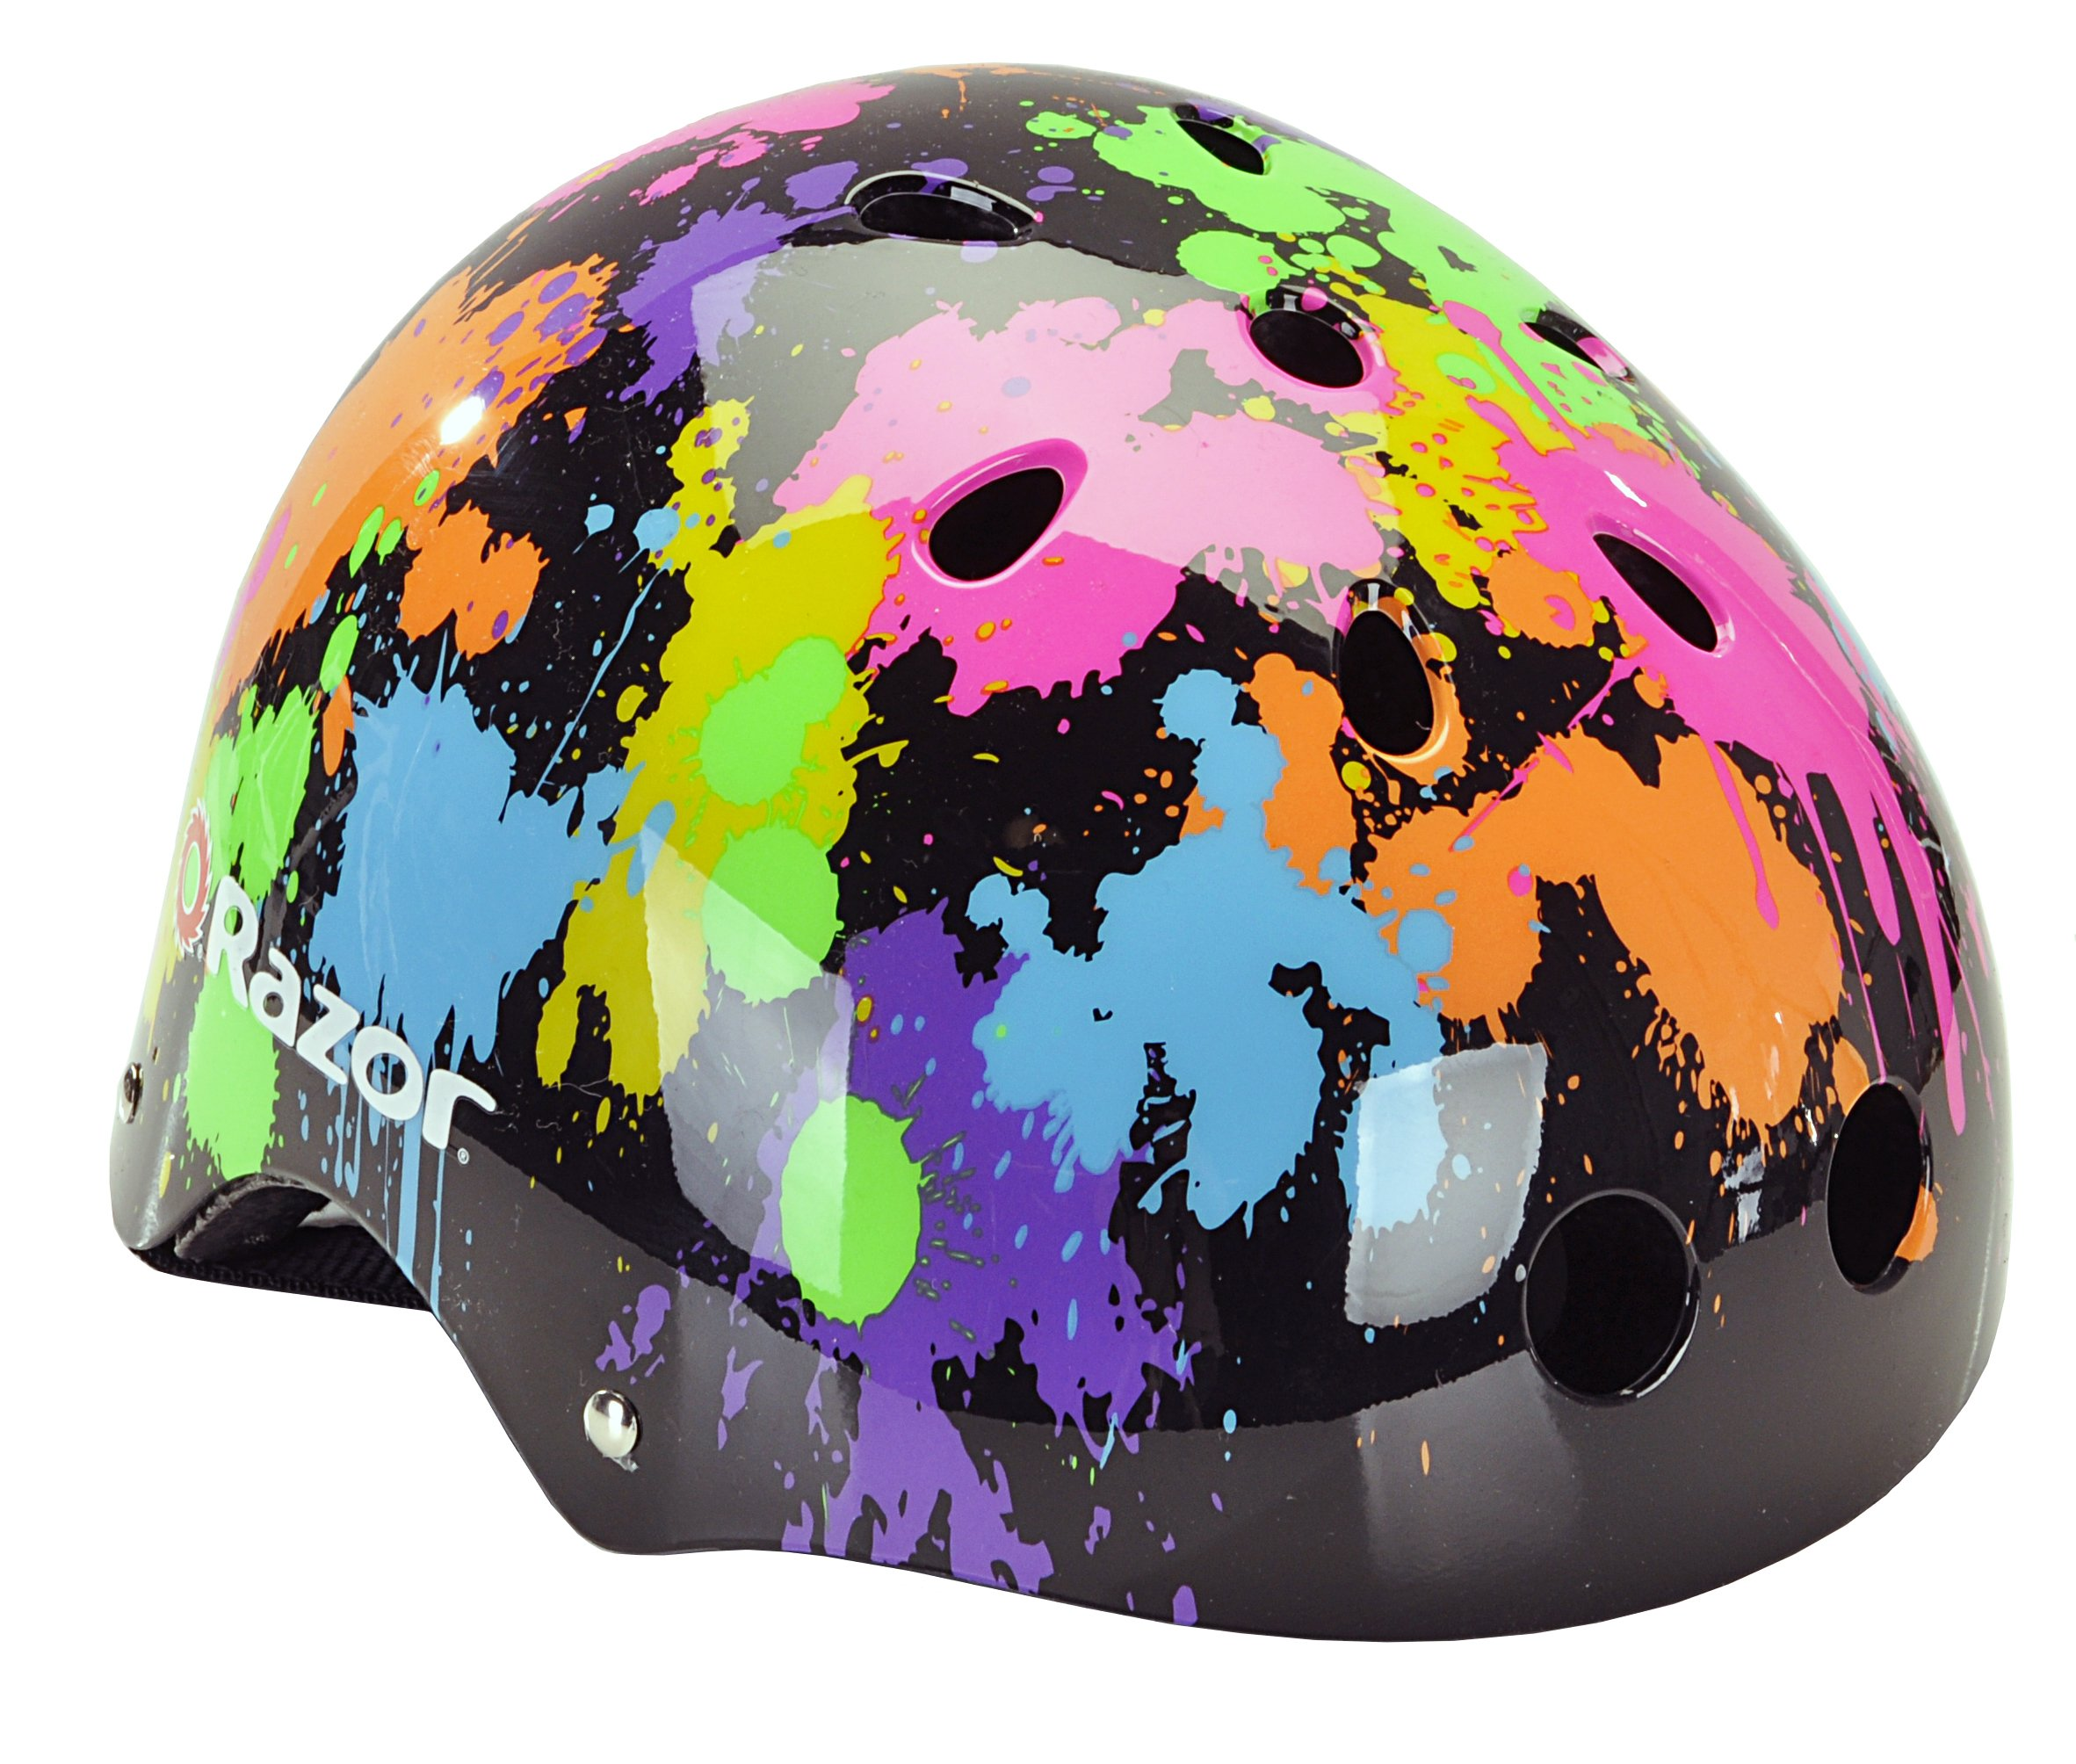 Razor V-11 Child Muli-Sport Helmet, Splatter by Razor